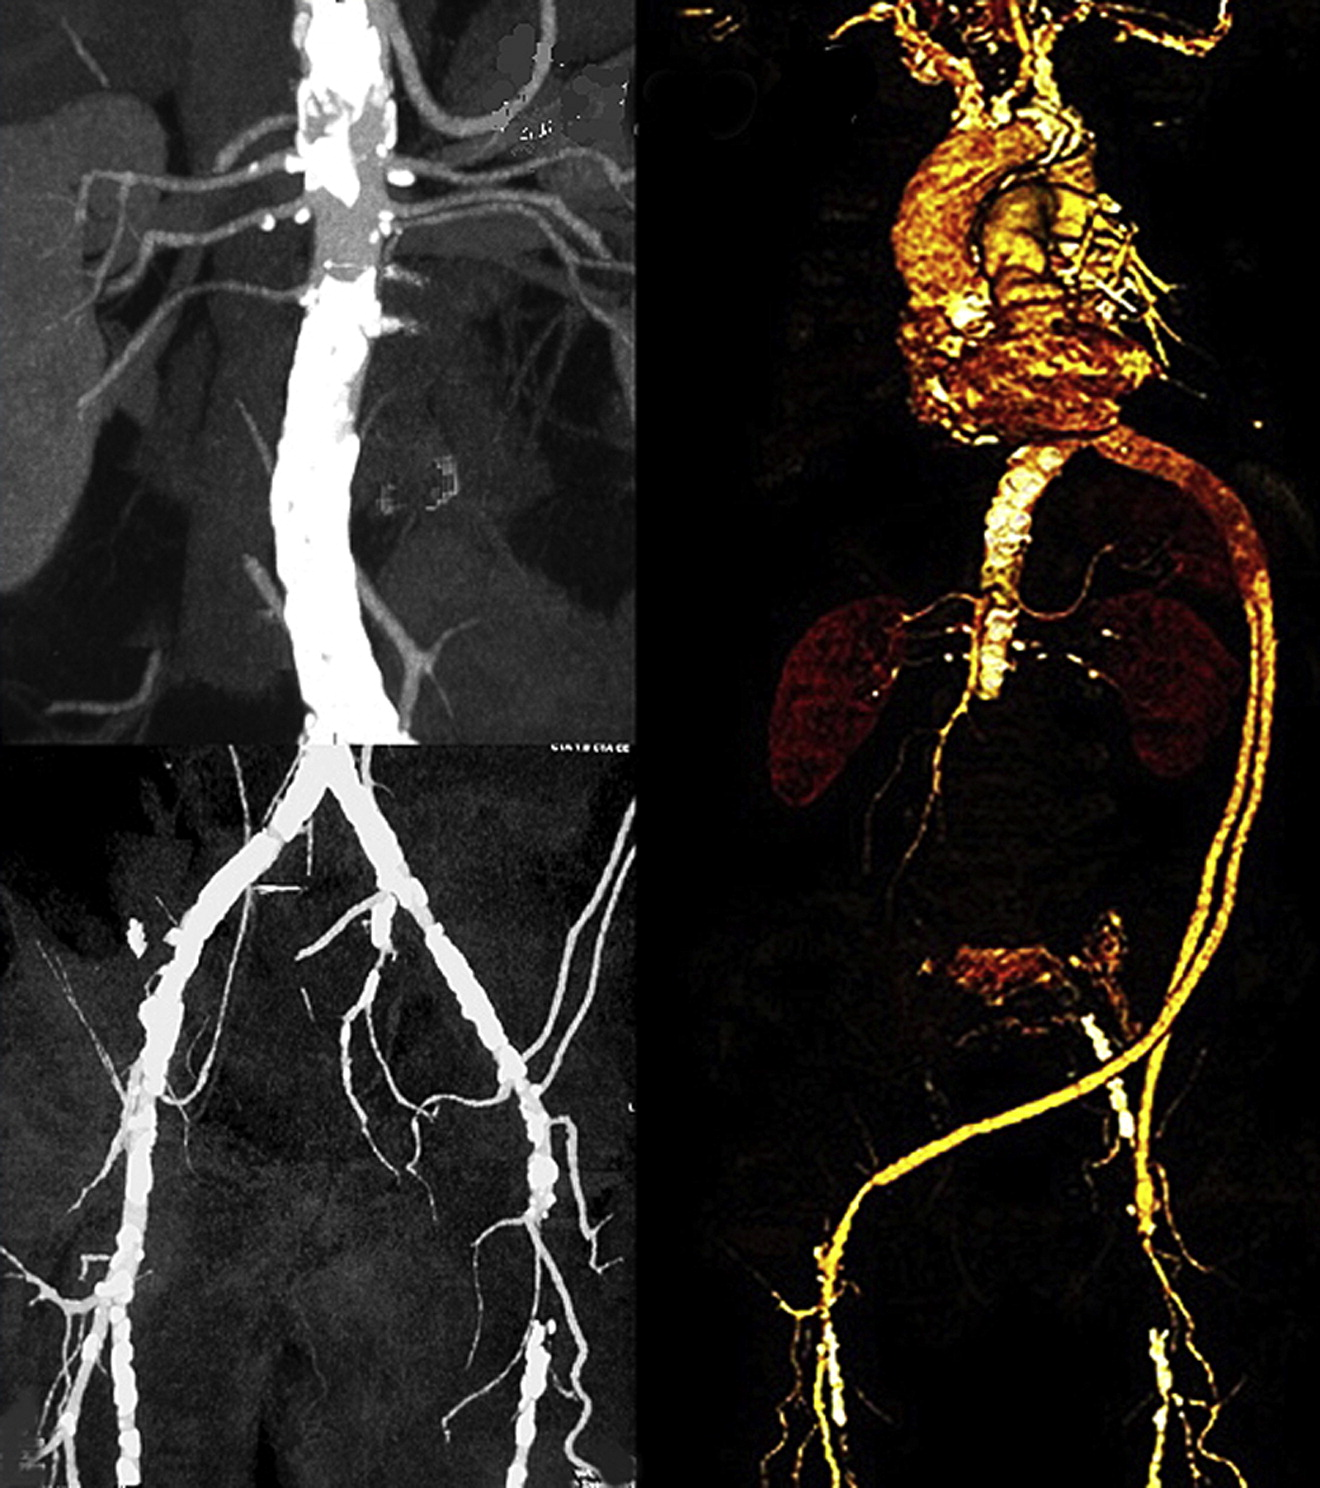 Lower Limbs Revascularization From Supraceliac And Thoracic Aorta